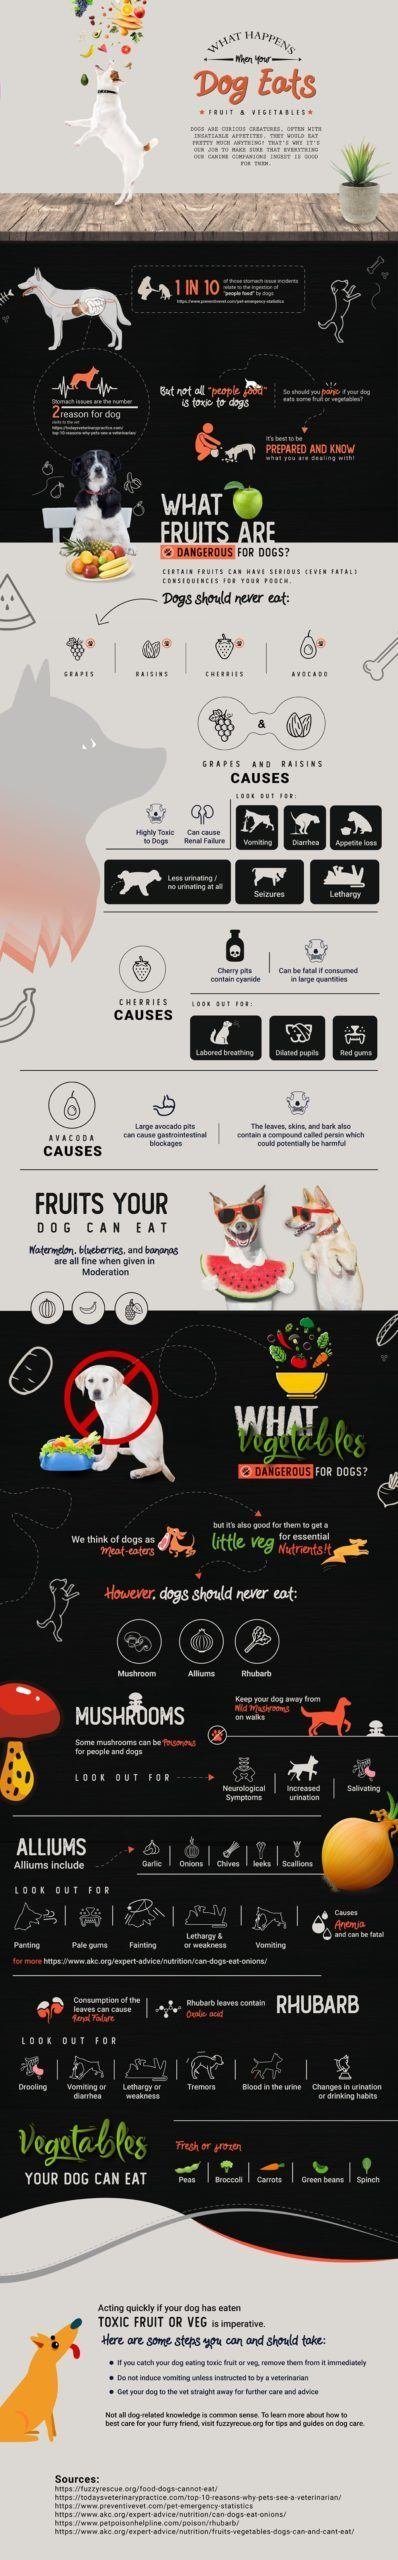 Has Your Dog Eaten Something Toxic? Here Are The Signs 3